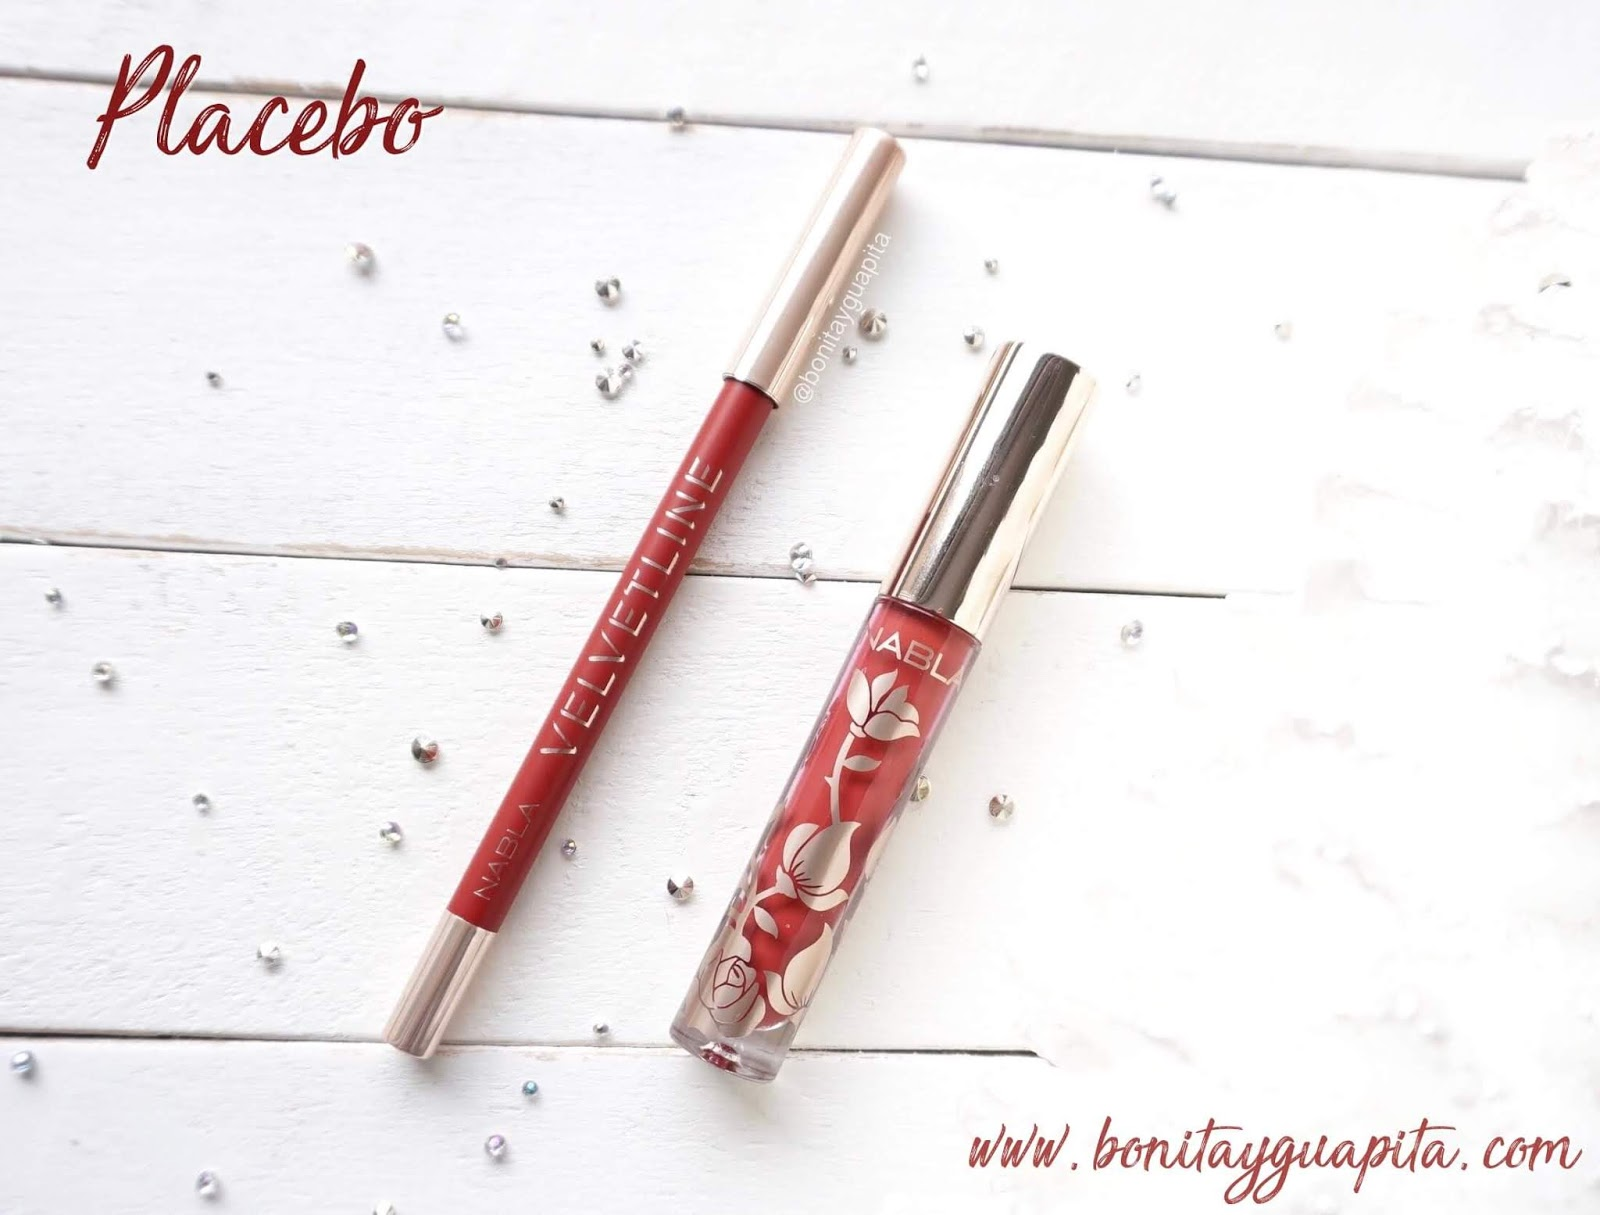 nabla lip kit placebo labial perfilador